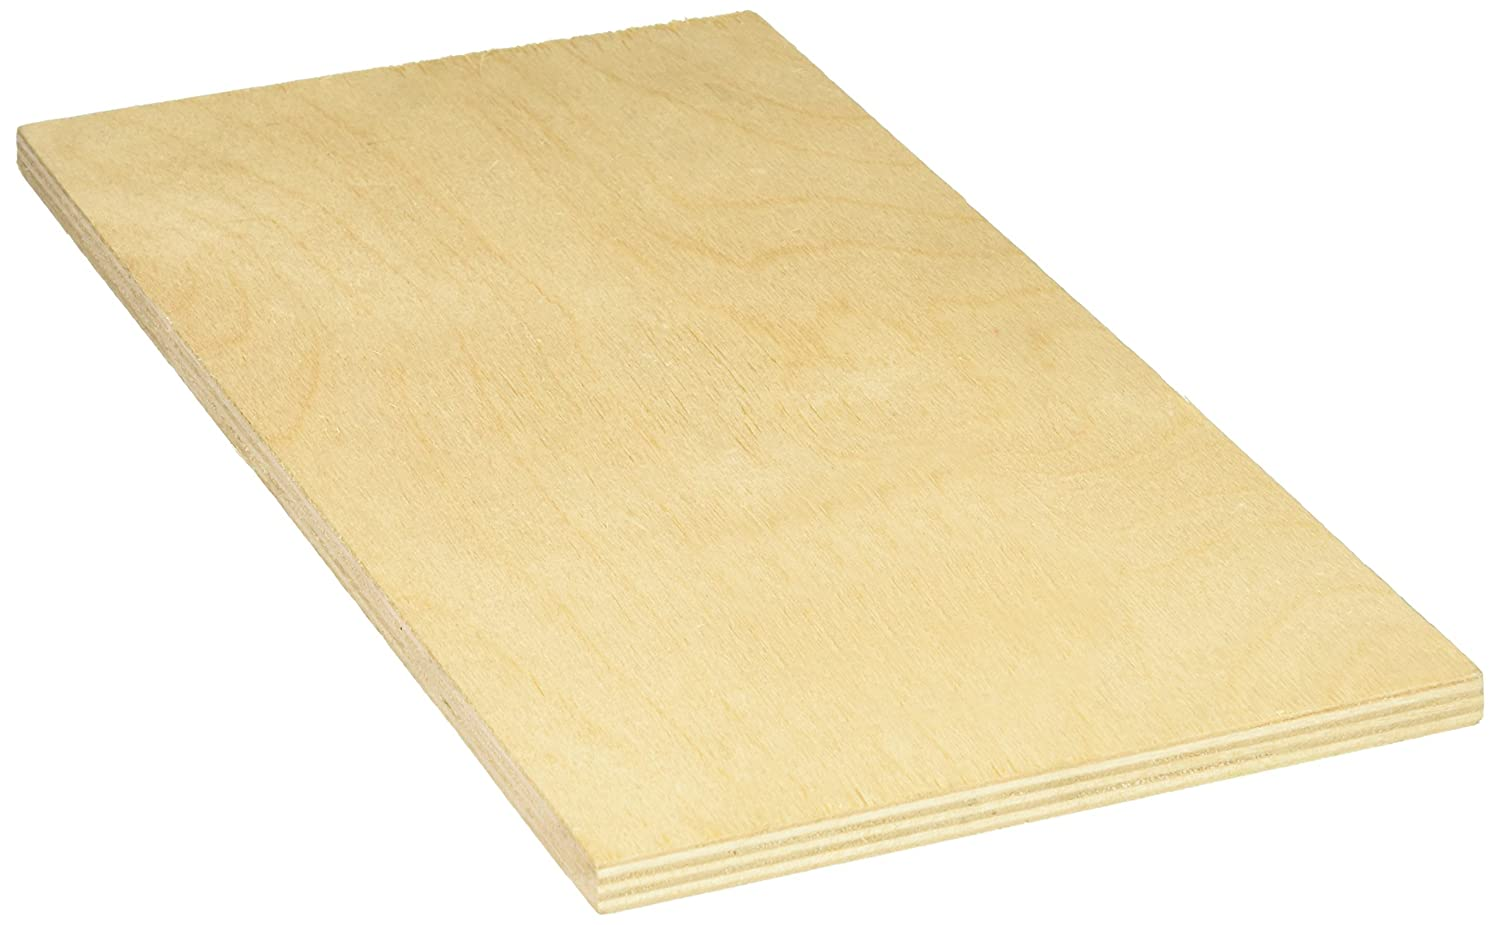 Midwest Products 5324 Birch Plywood, 3/8 x 6 x 12-Inch